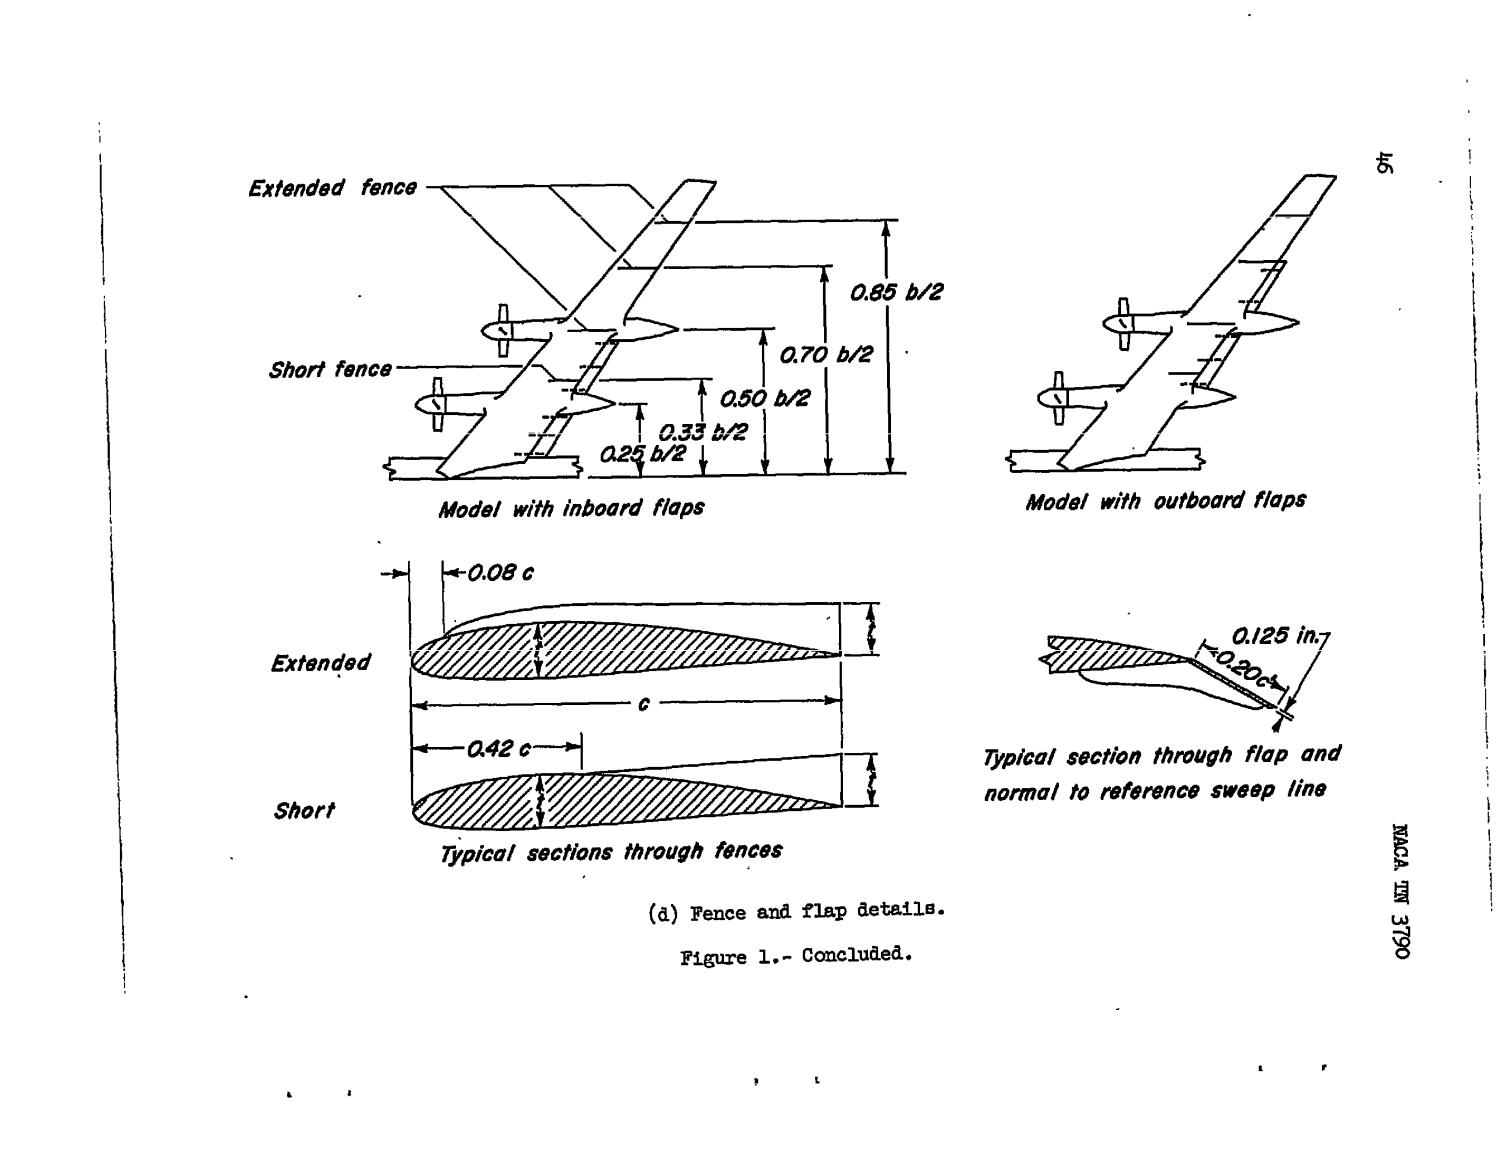 Analysis of Wind-Tunnel Tests to a Mach Number of 0.90 of a Four-Engine Propeller-Driven Airplane Configuration Having a Wing With 40 Degrees of Sweepback and an Aspect Ratio of 10                                                                                                      [Sequence #]: 47 of 171